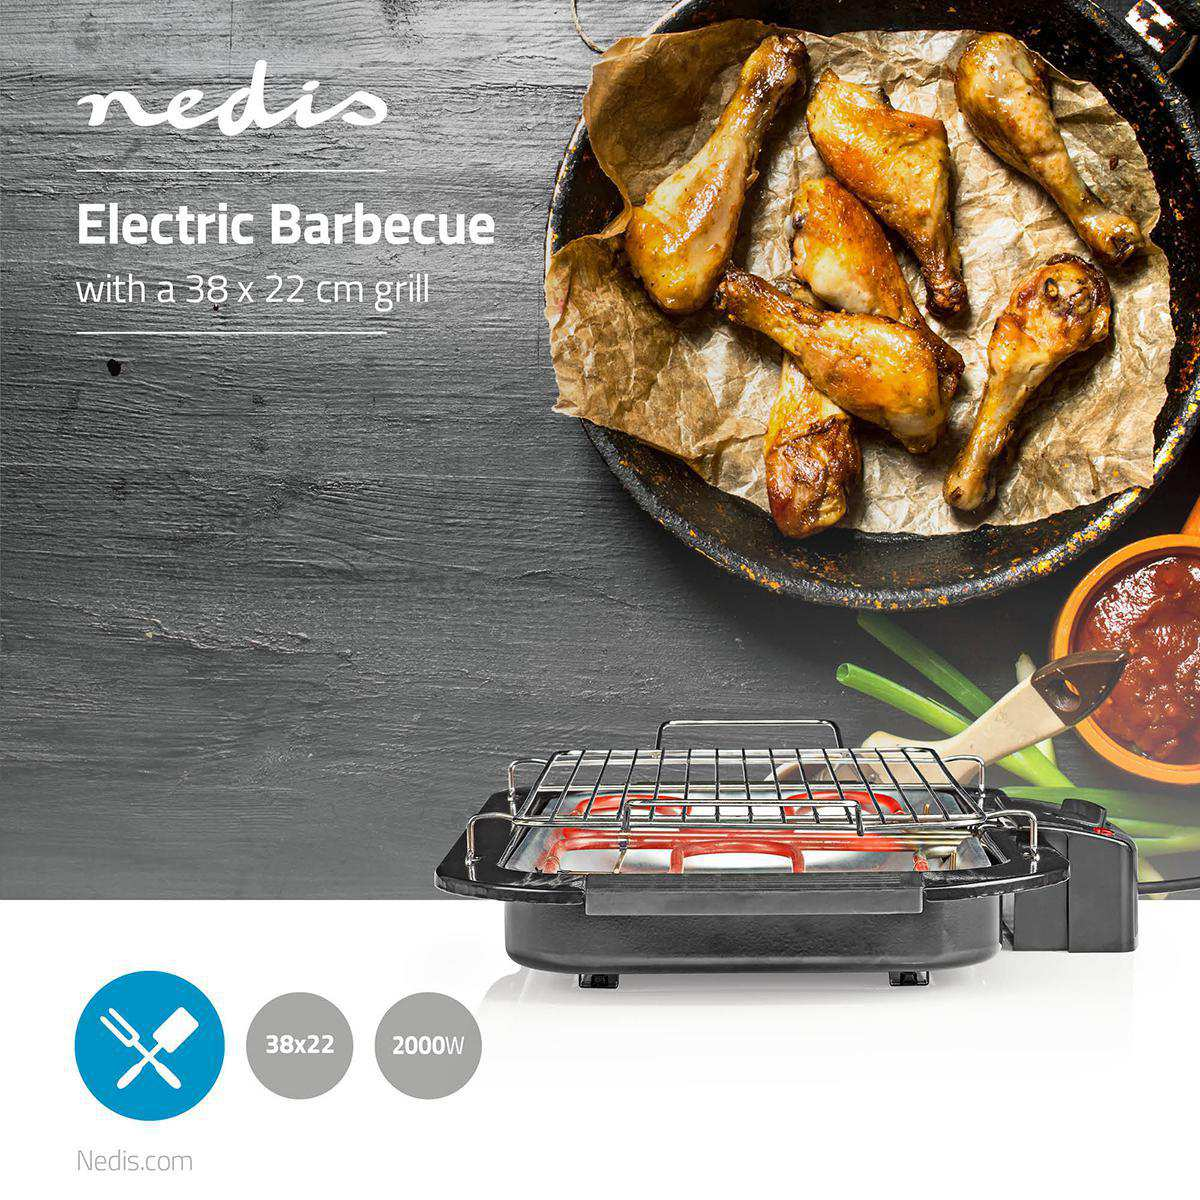 Table BBQ Barbecue Electric Grill Nedis